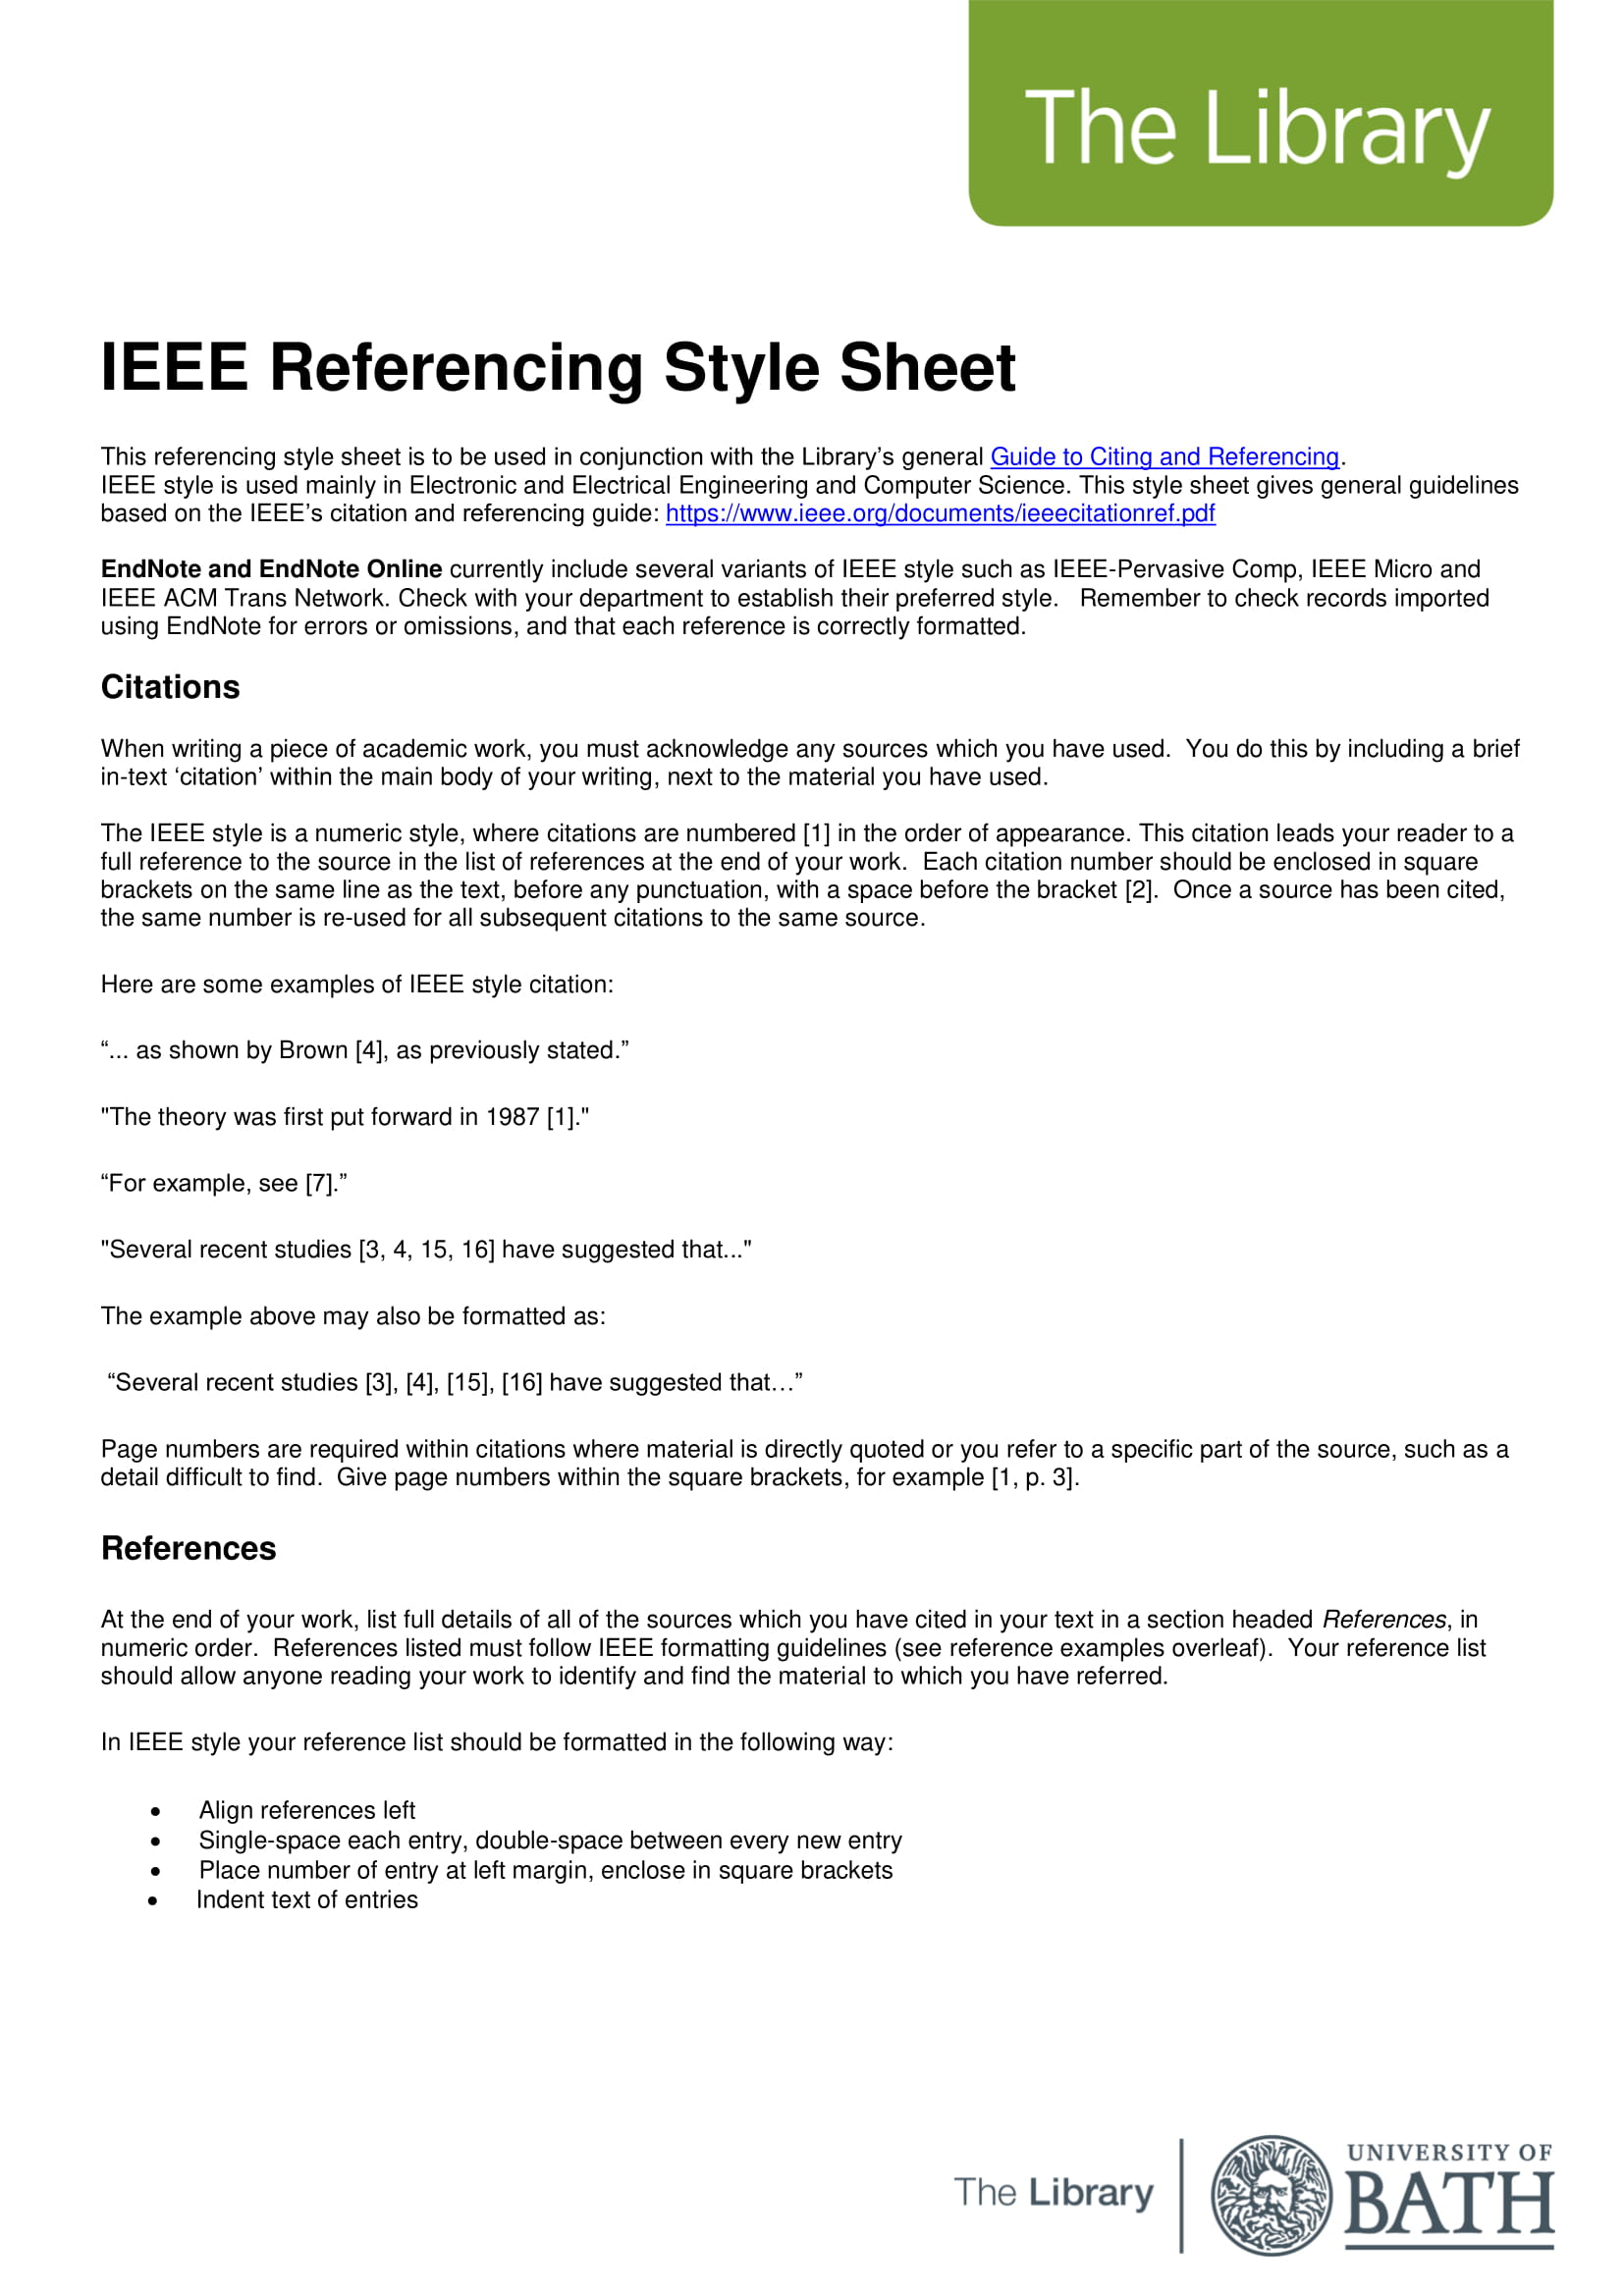 ieee referencing style sheet example